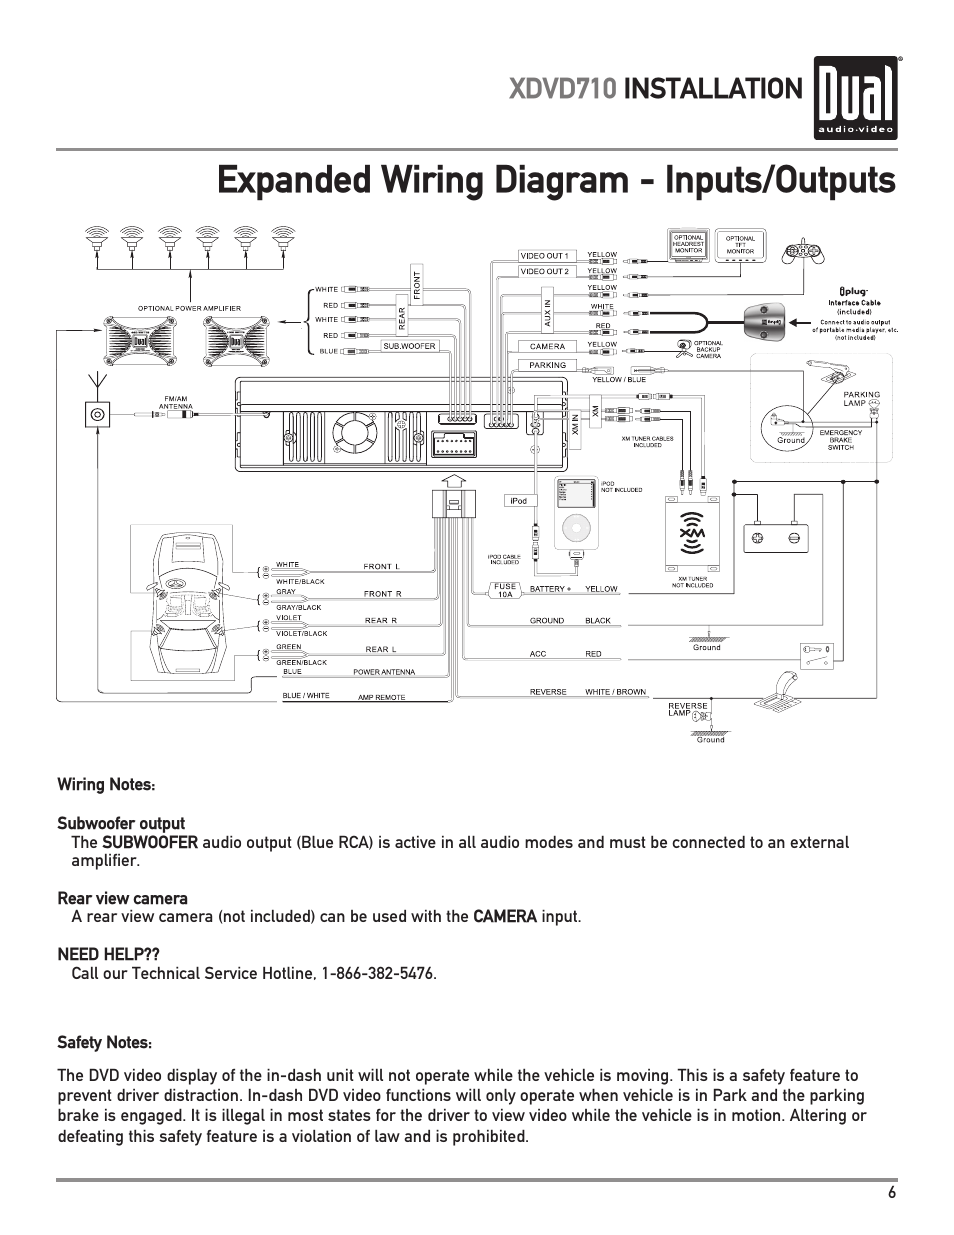 dual xdvd710 page7?resize\\\\\\\\\\\\\\\\\\\\\\\\\\\\\\\=665%2C861 dual xd1222 wiring harness for wiring diagrams dual xdma760 wiring harness at readyjetset.co